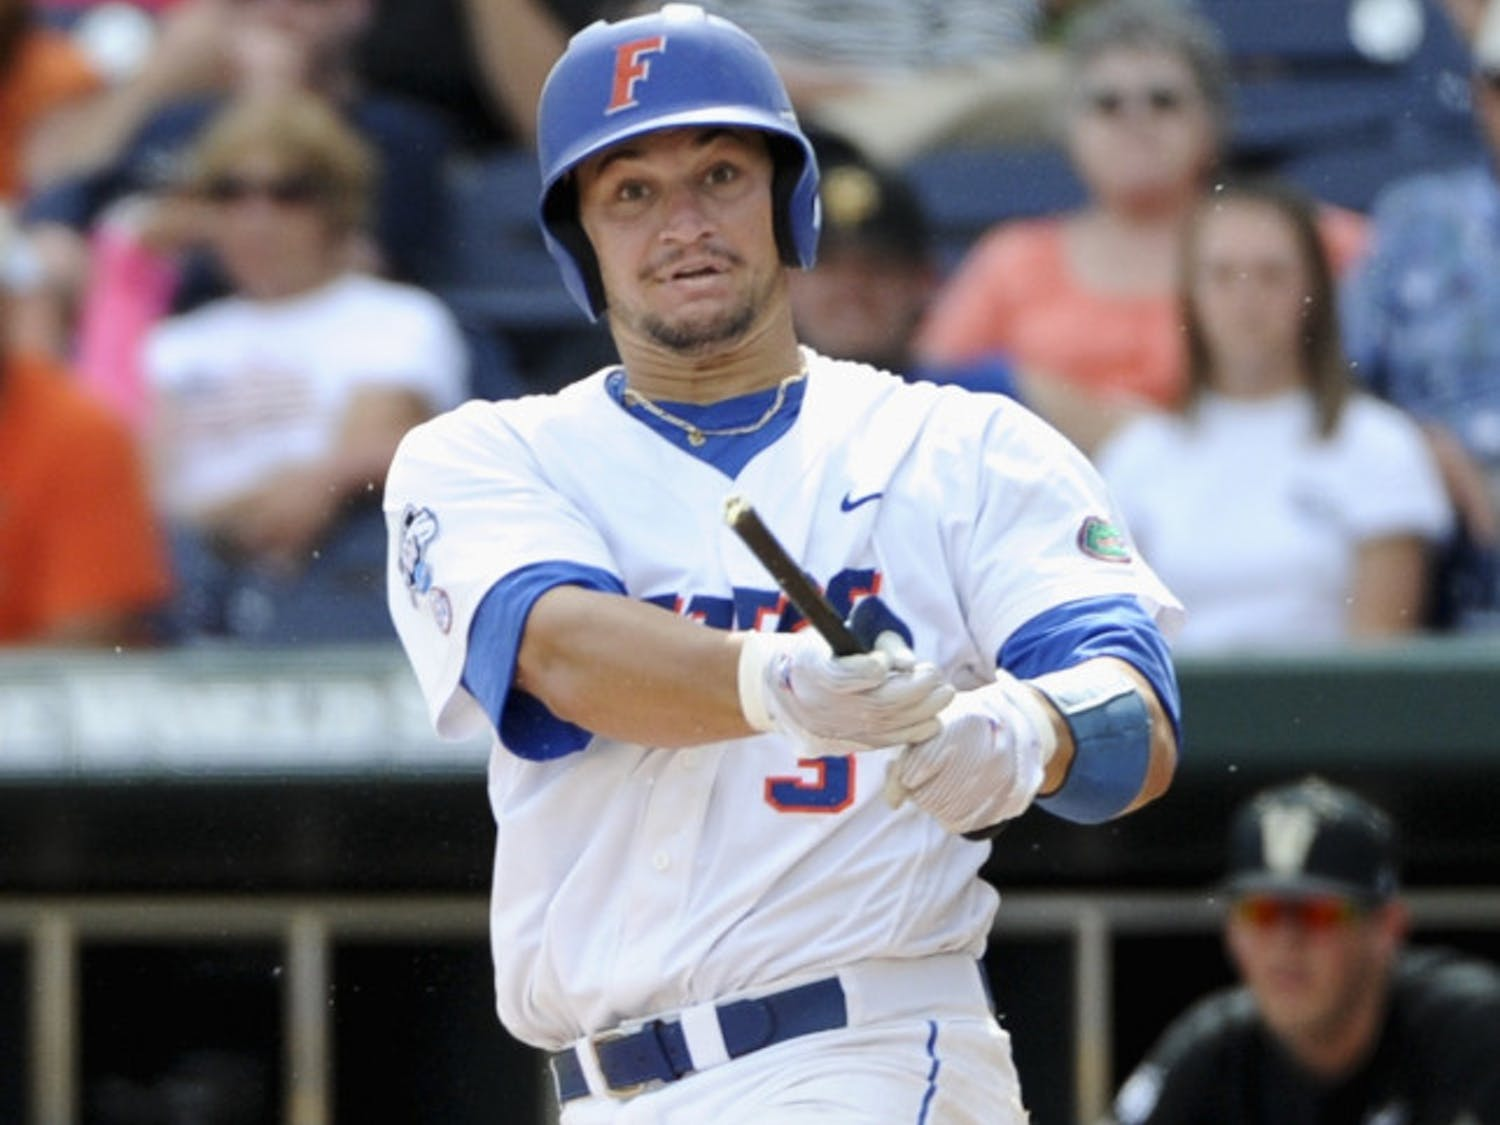 Florida catcher Mike Zunino had his aluminum bat sawed off in the eighth inning of UF's 6-4 win over Vanderbilt on Friday at the College World Series